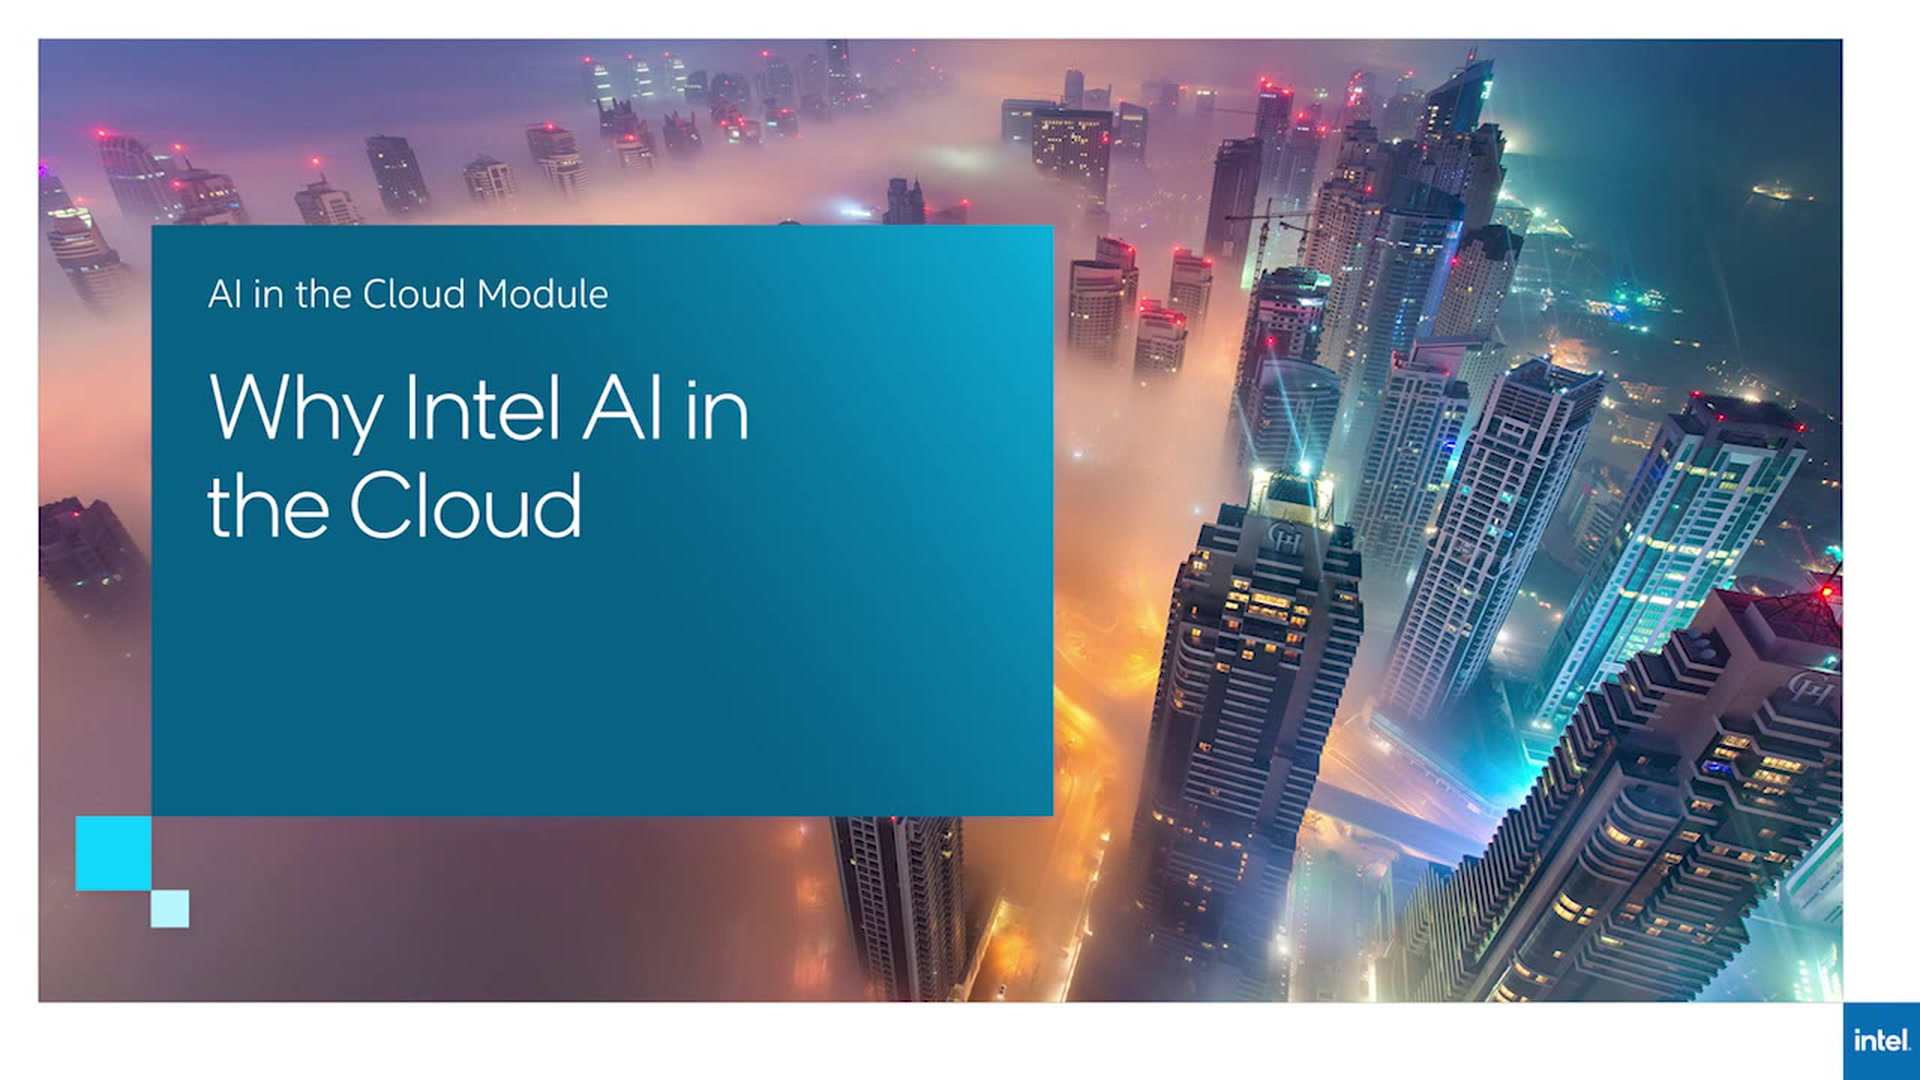 Chapter 1: Why Intel AI in the Cloud